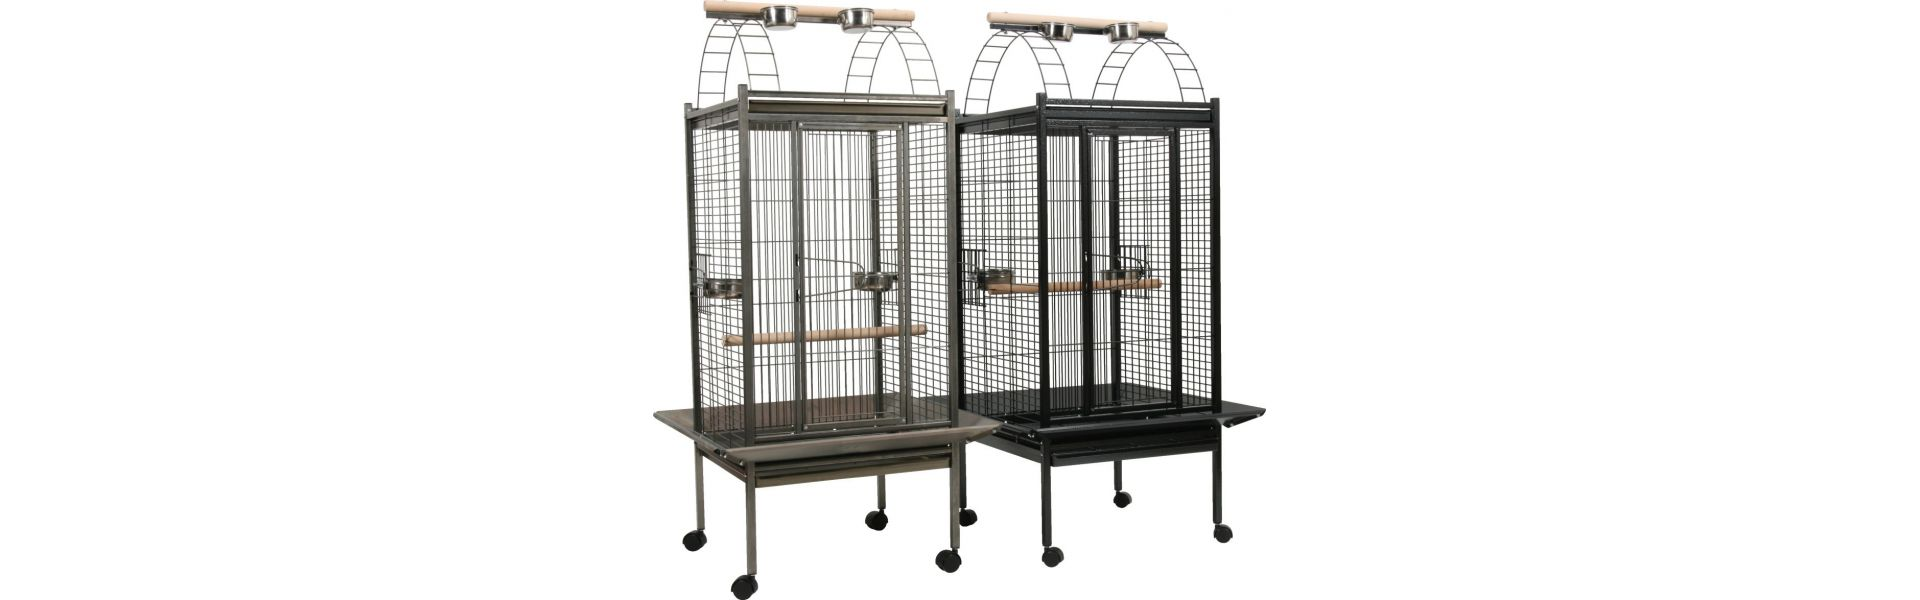 cage pour perruche et perroquet au comptoir de no au. Black Bedroom Furniture Sets. Home Design Ideas